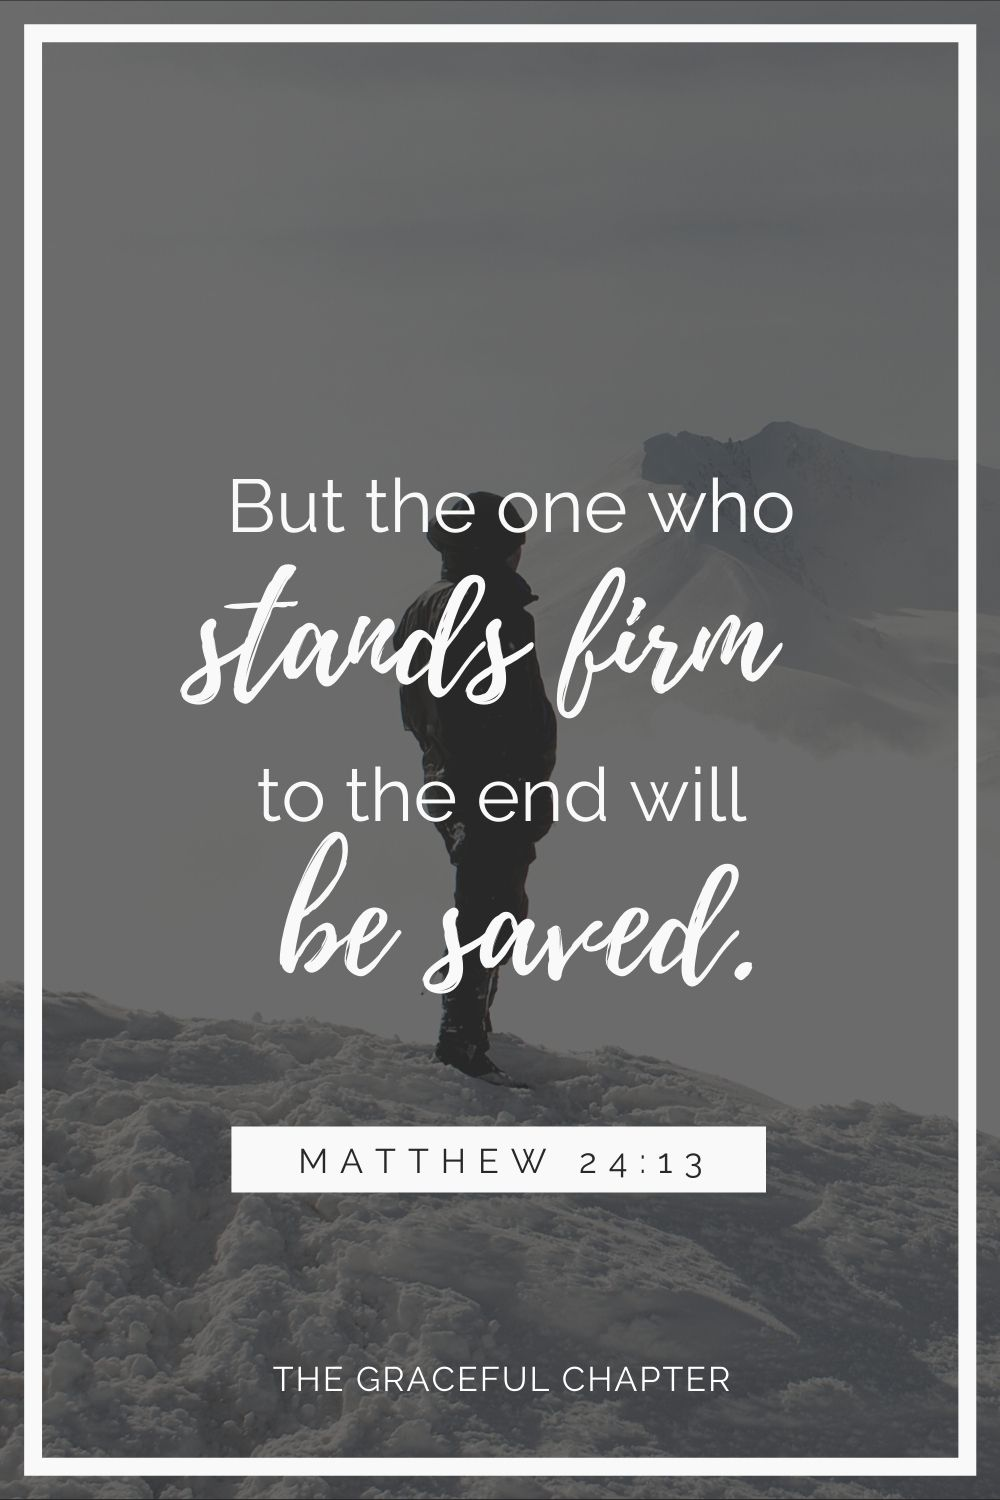 But the one who stands firm to the end will be saved. Matthew 24:13